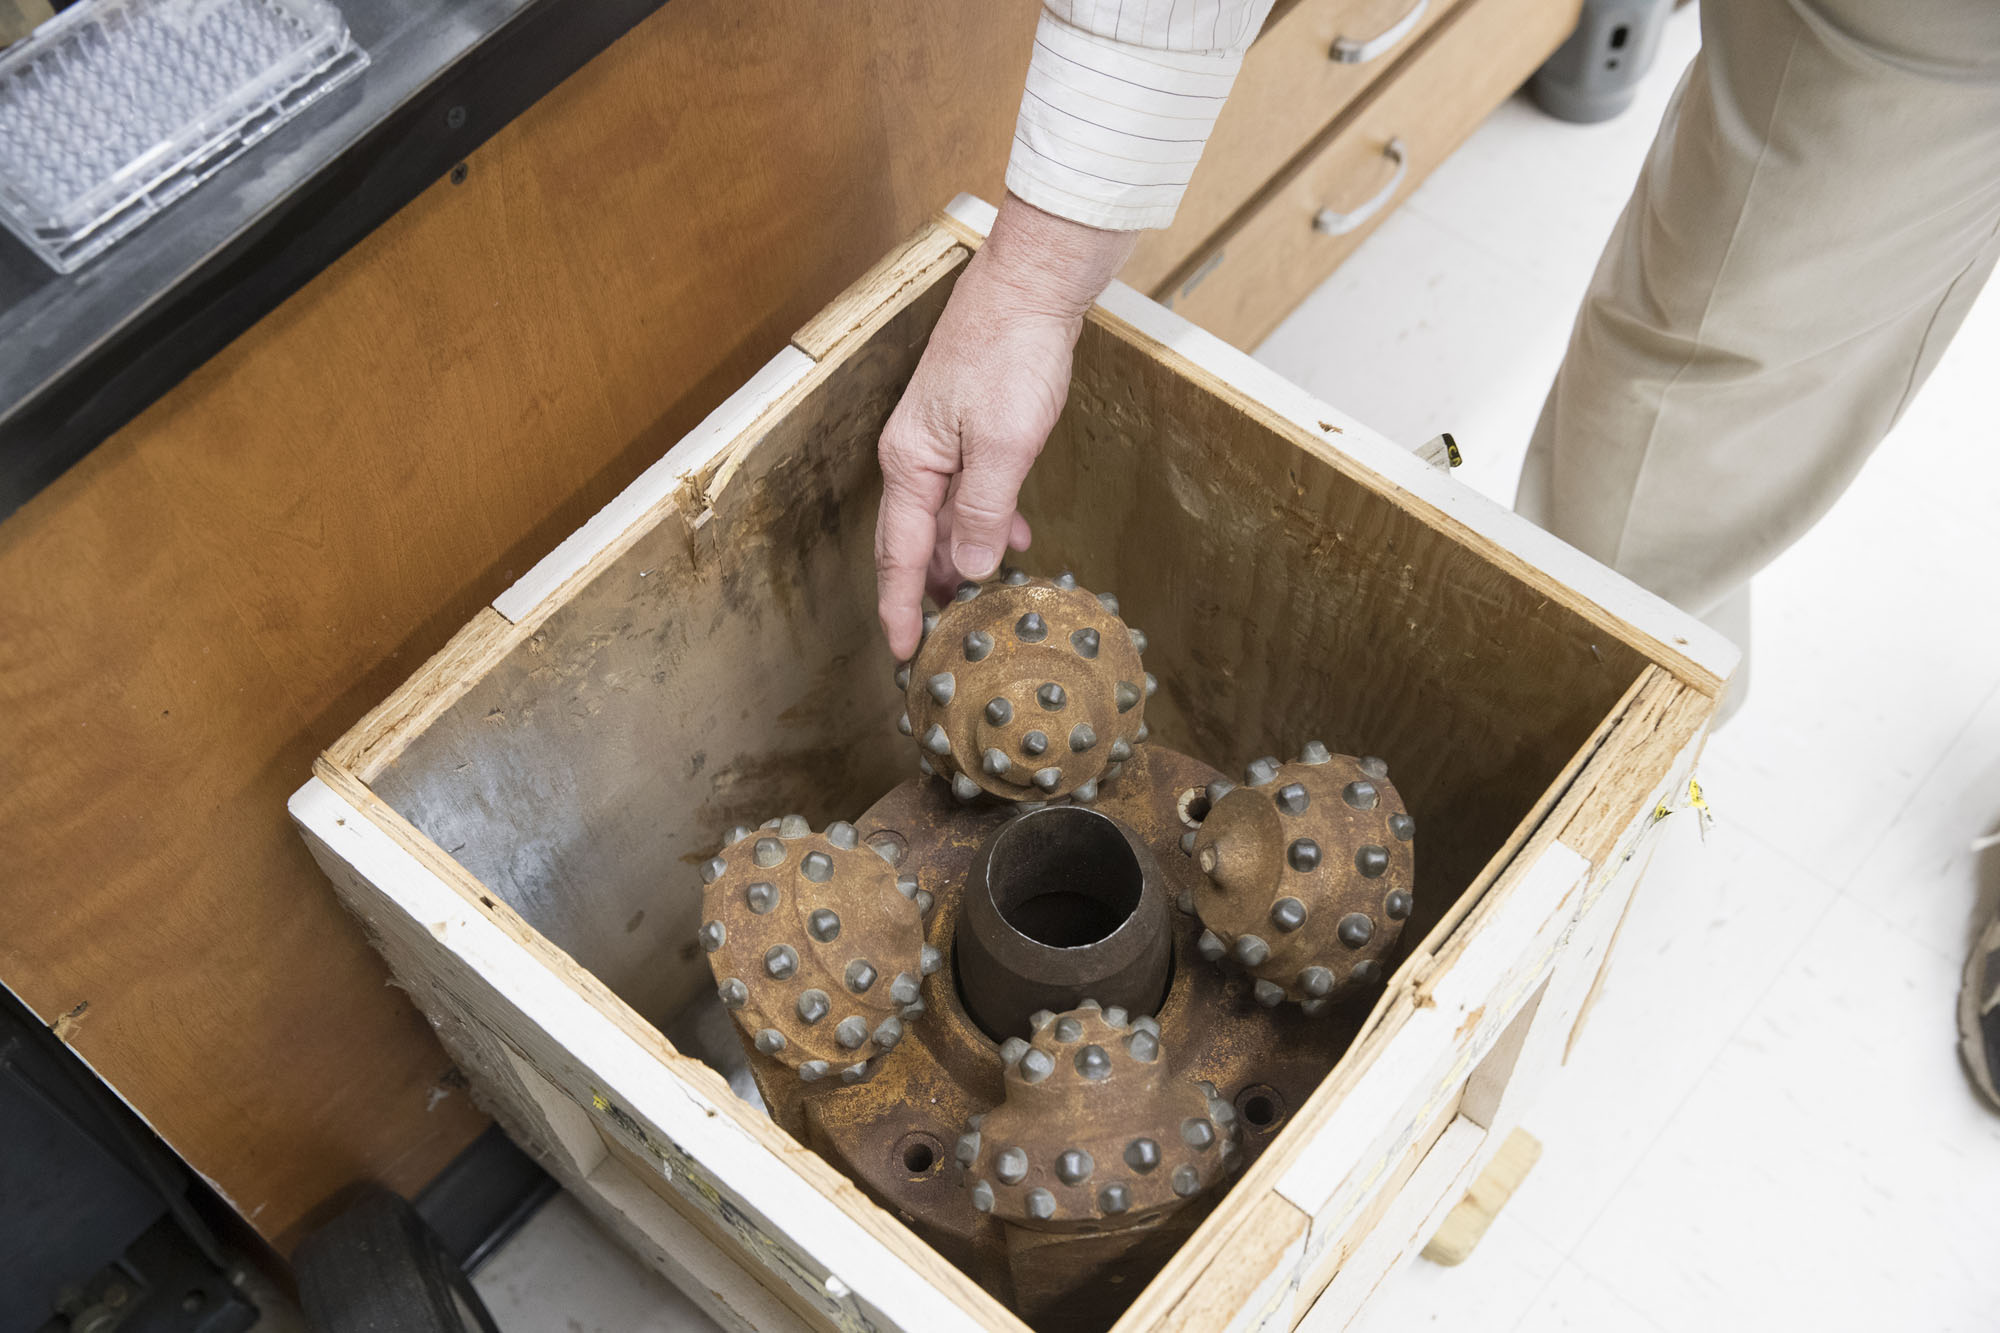 Macko's new 200-pound drill bit from a scientific ship. It's been to the bottom of the sea, as has Macko.